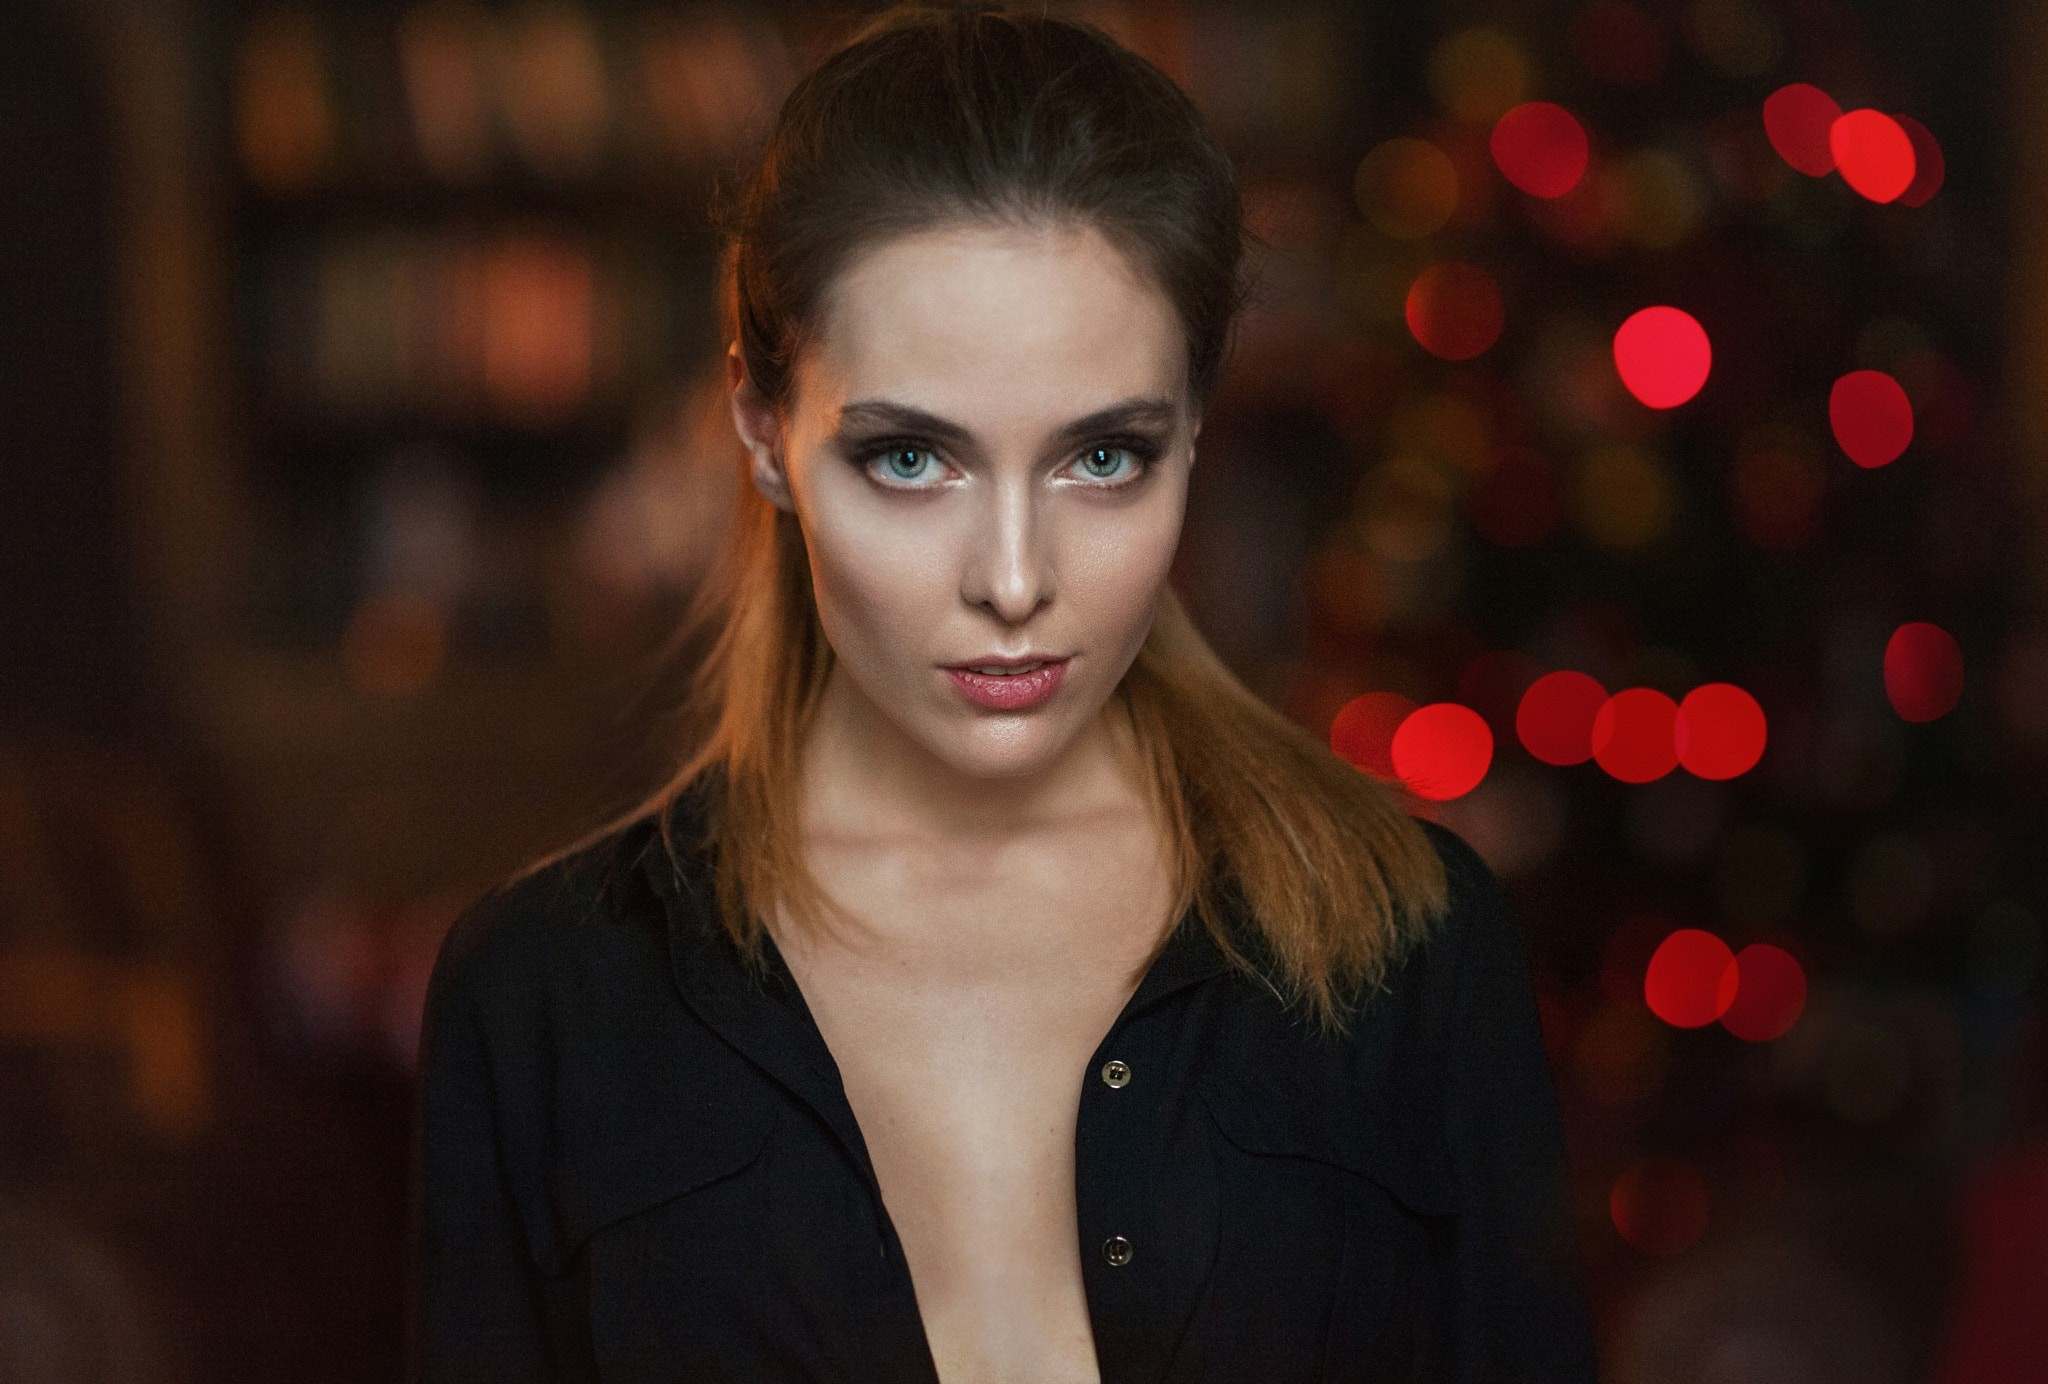 People 2048x1384 Amina Katinova women face portrait depth of field Maxim Maximov